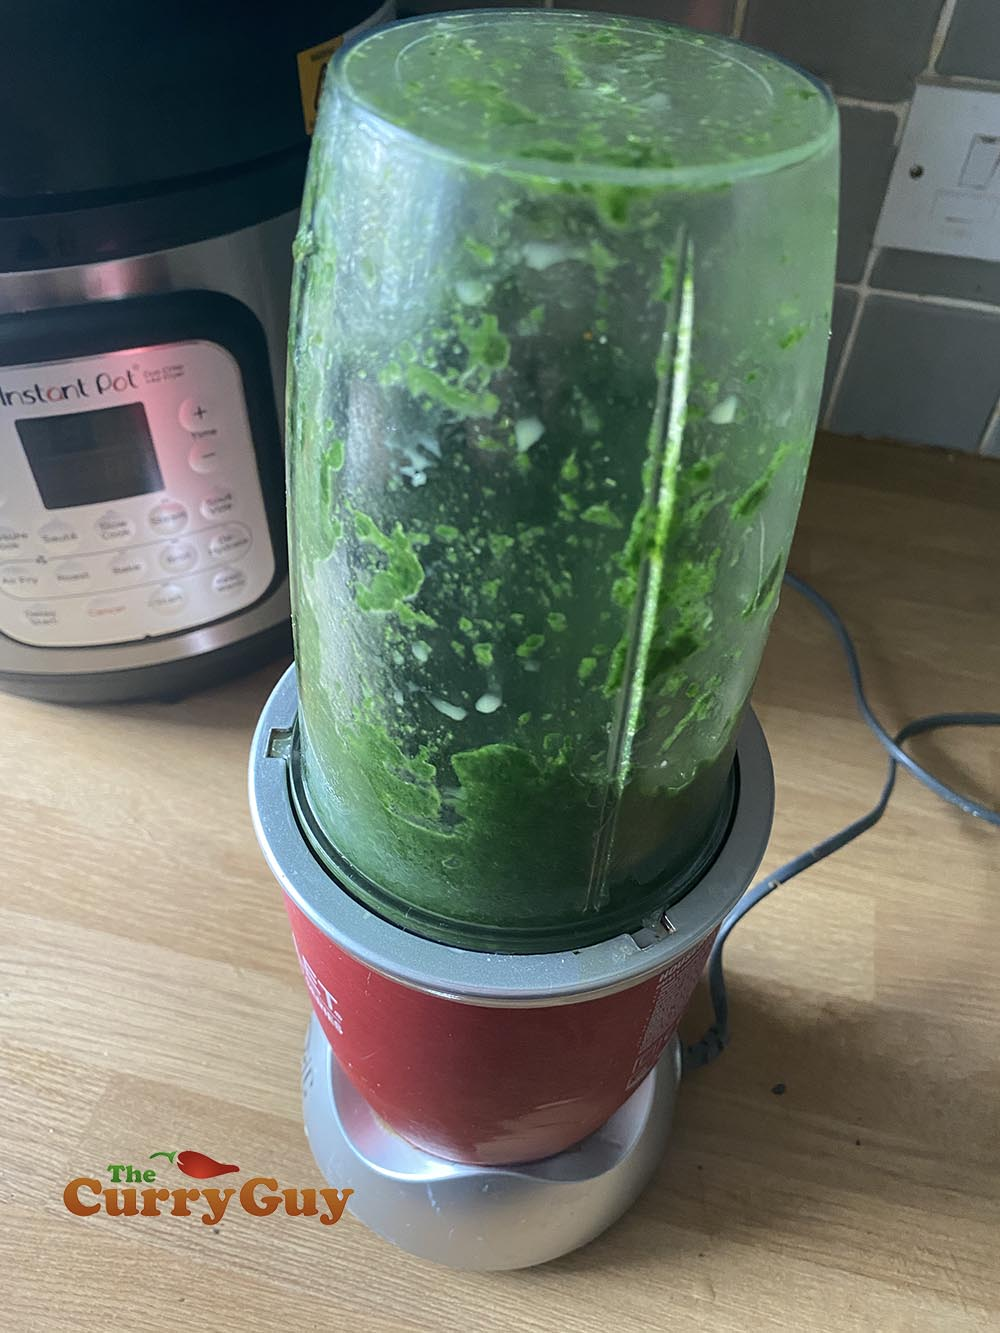 Blending spinach